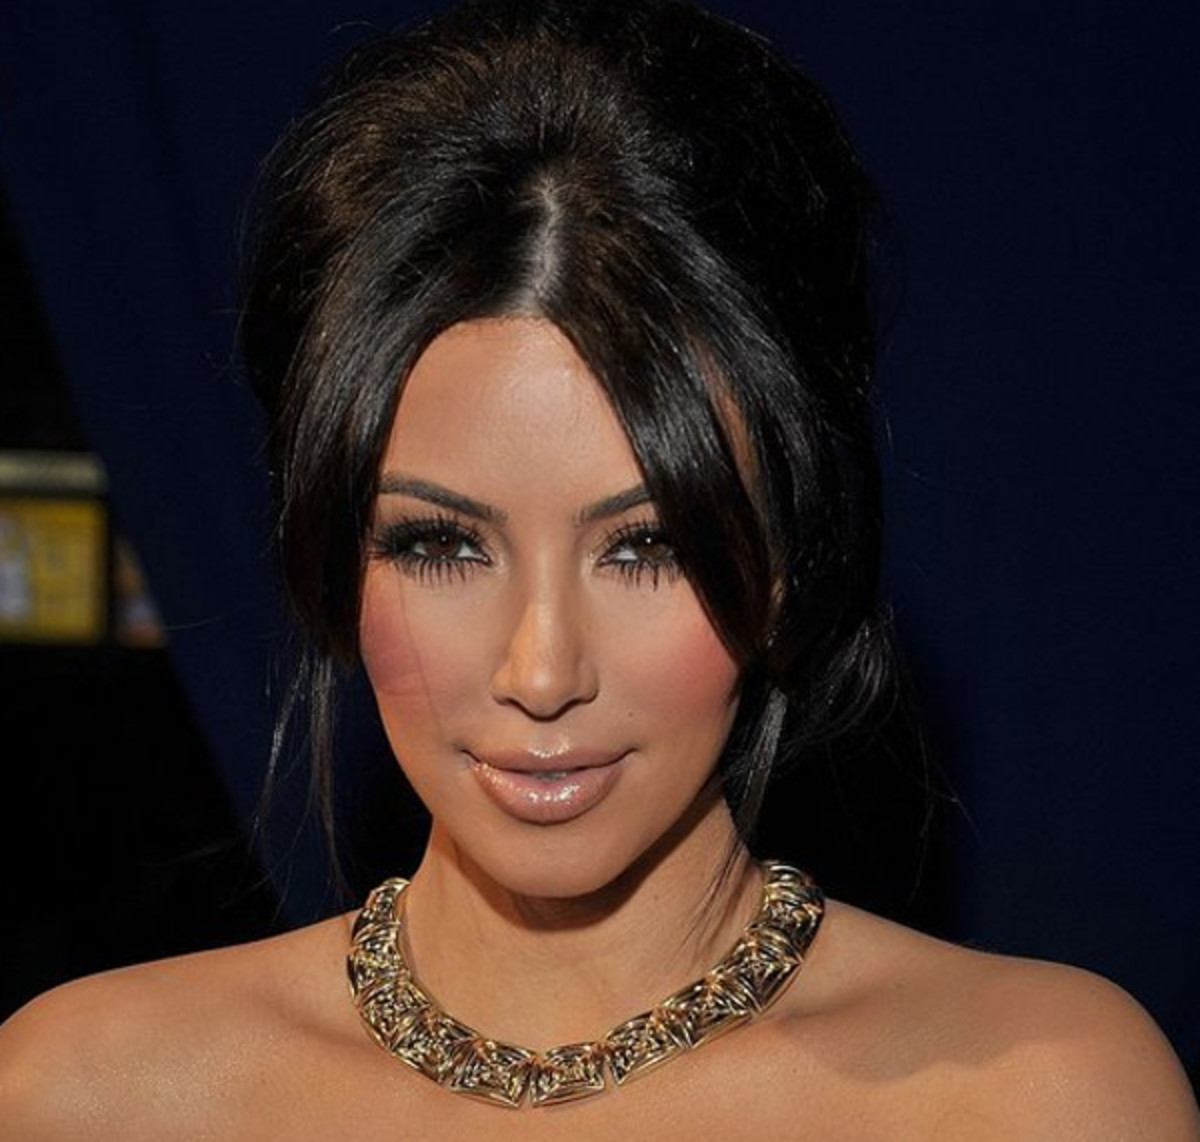 Kim-Kardashian-Peoples-Choice-Awards-Jan-2011